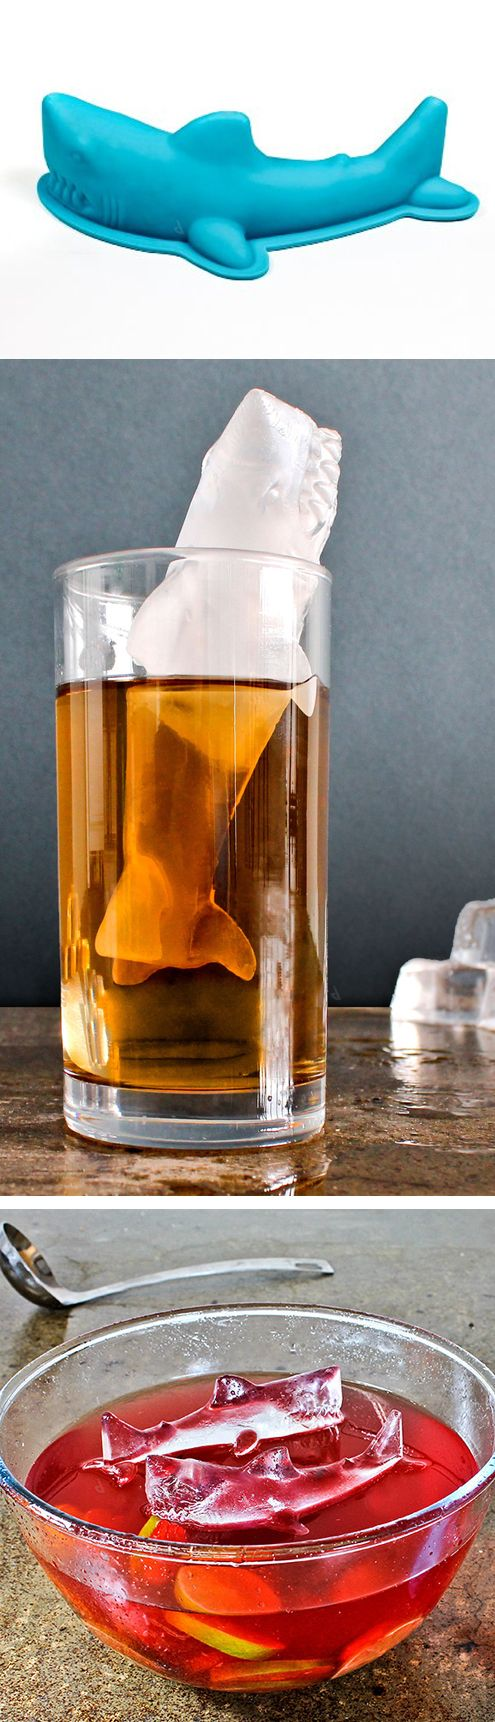 Shark ice mold // have Jaws swimming in your drink! #product_design